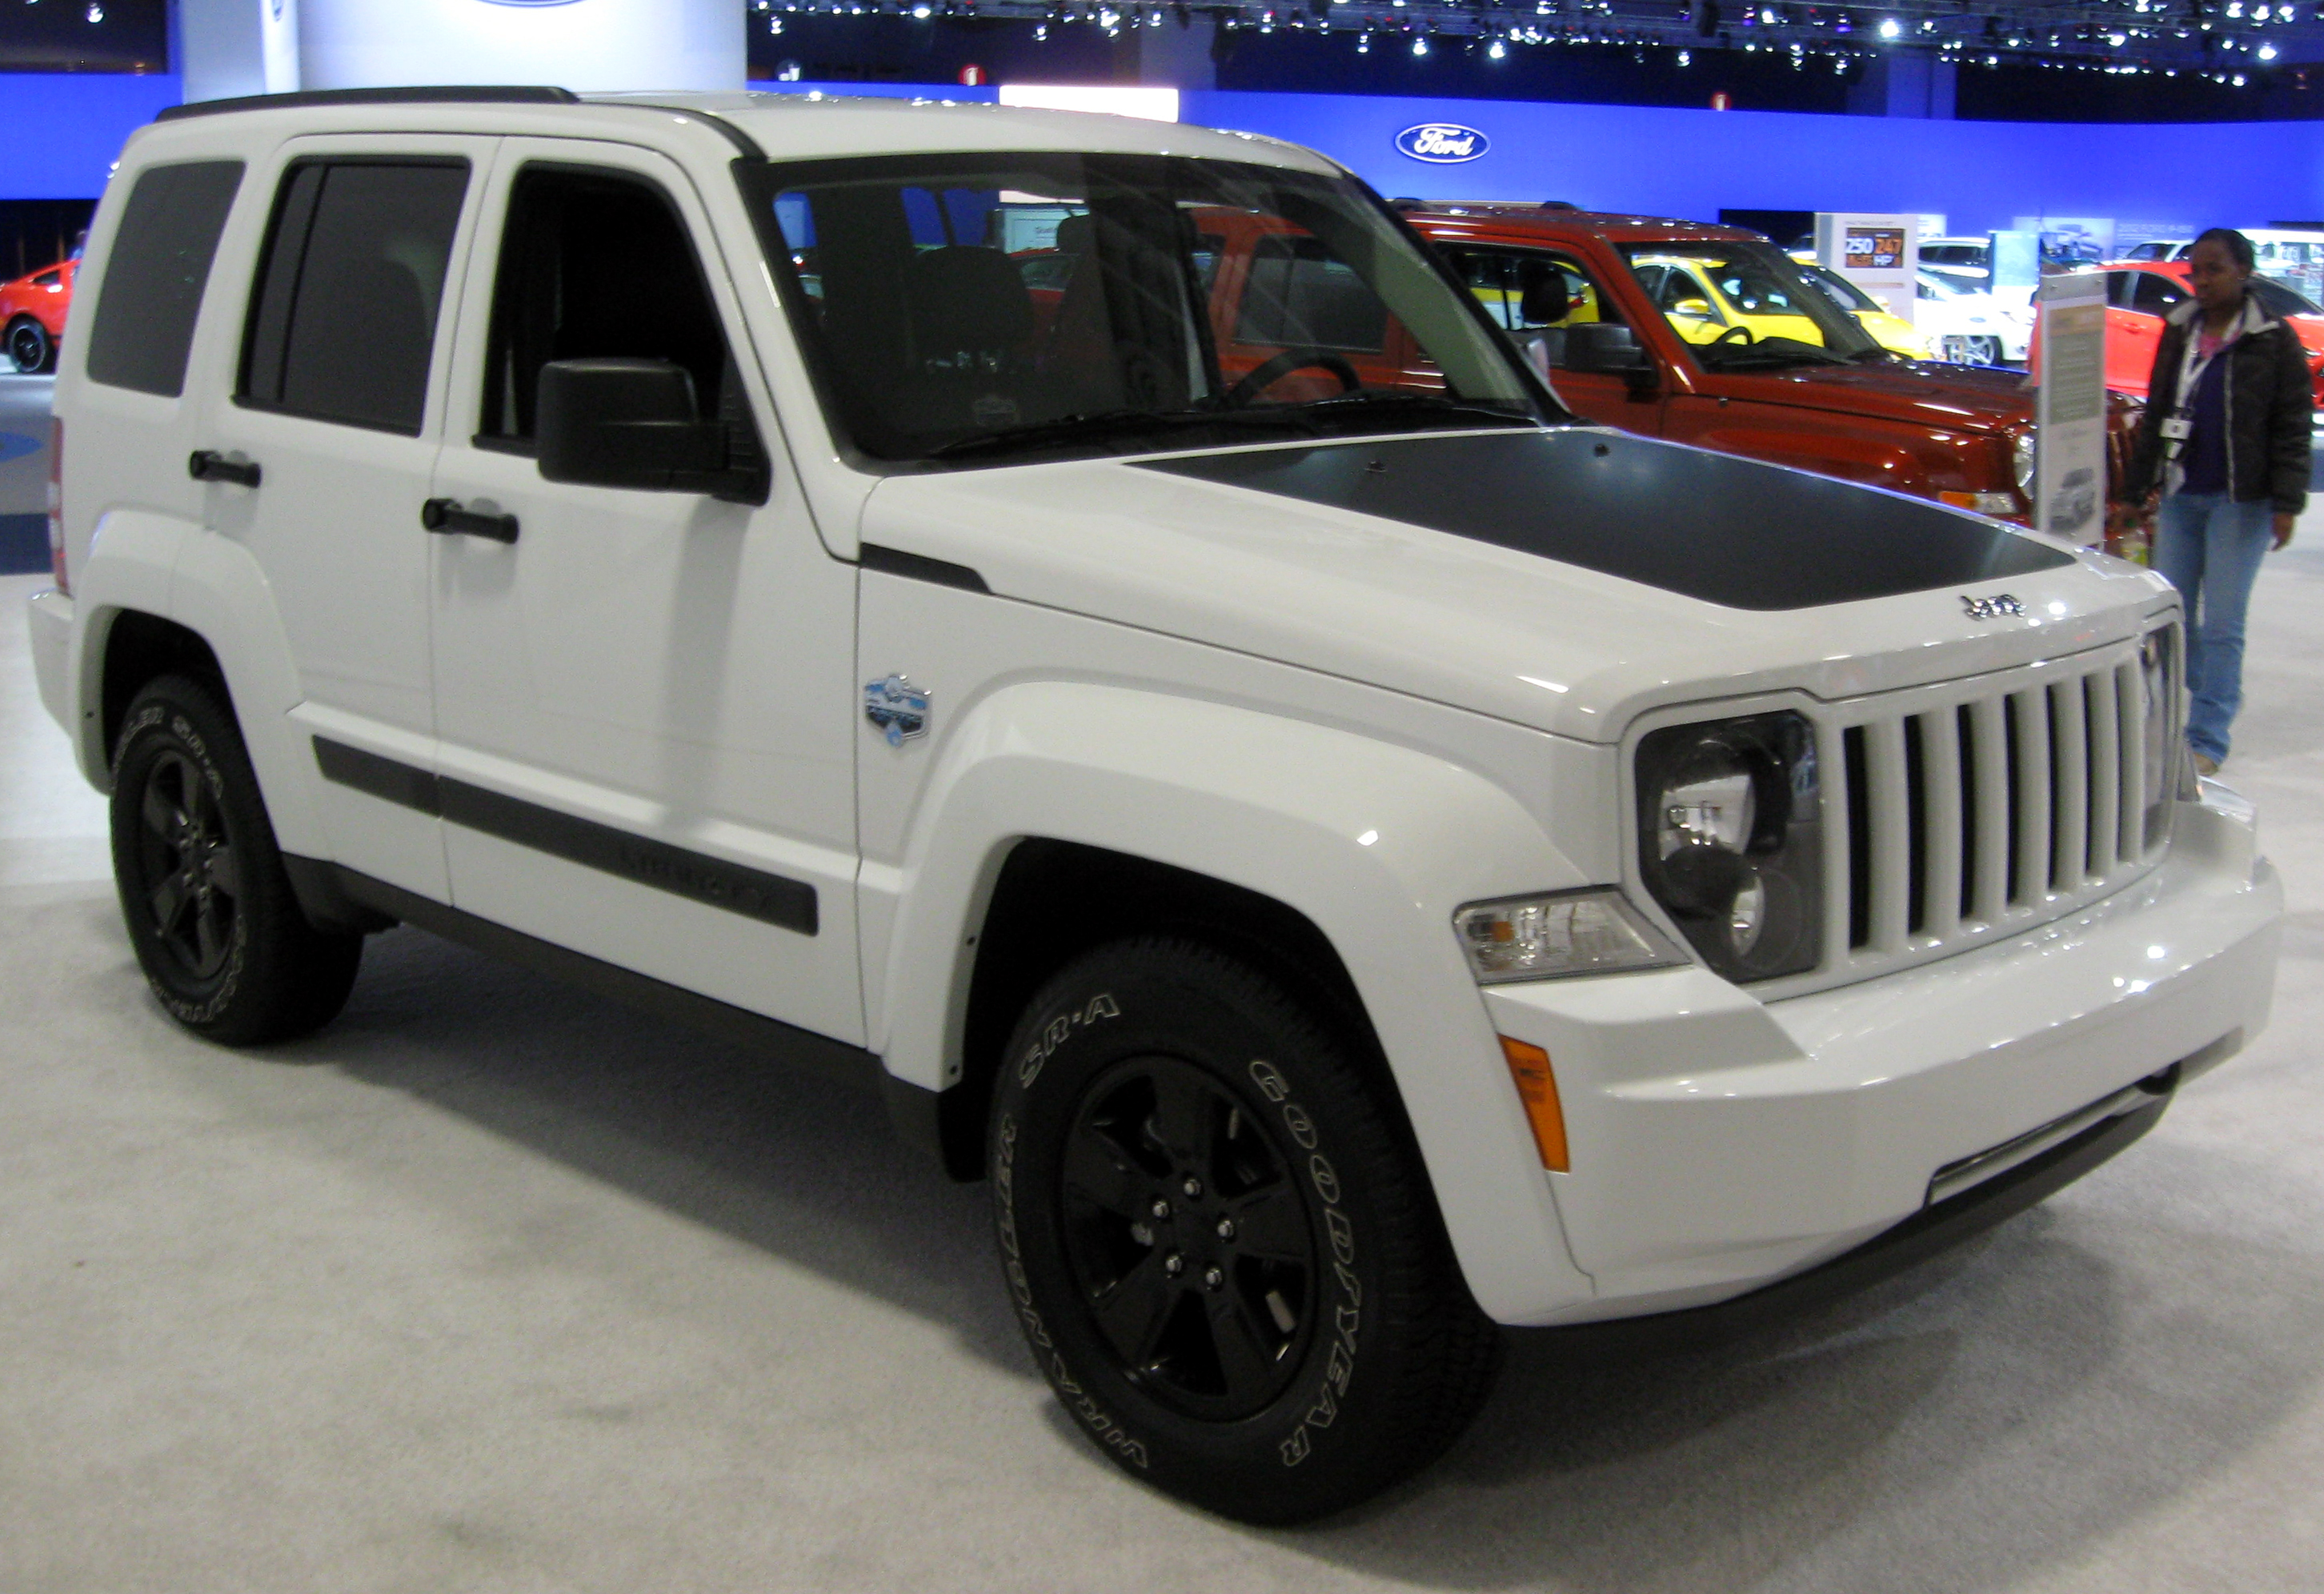 file:2012 jeep liberty arctic -- 2012 dc - wikimedia commons